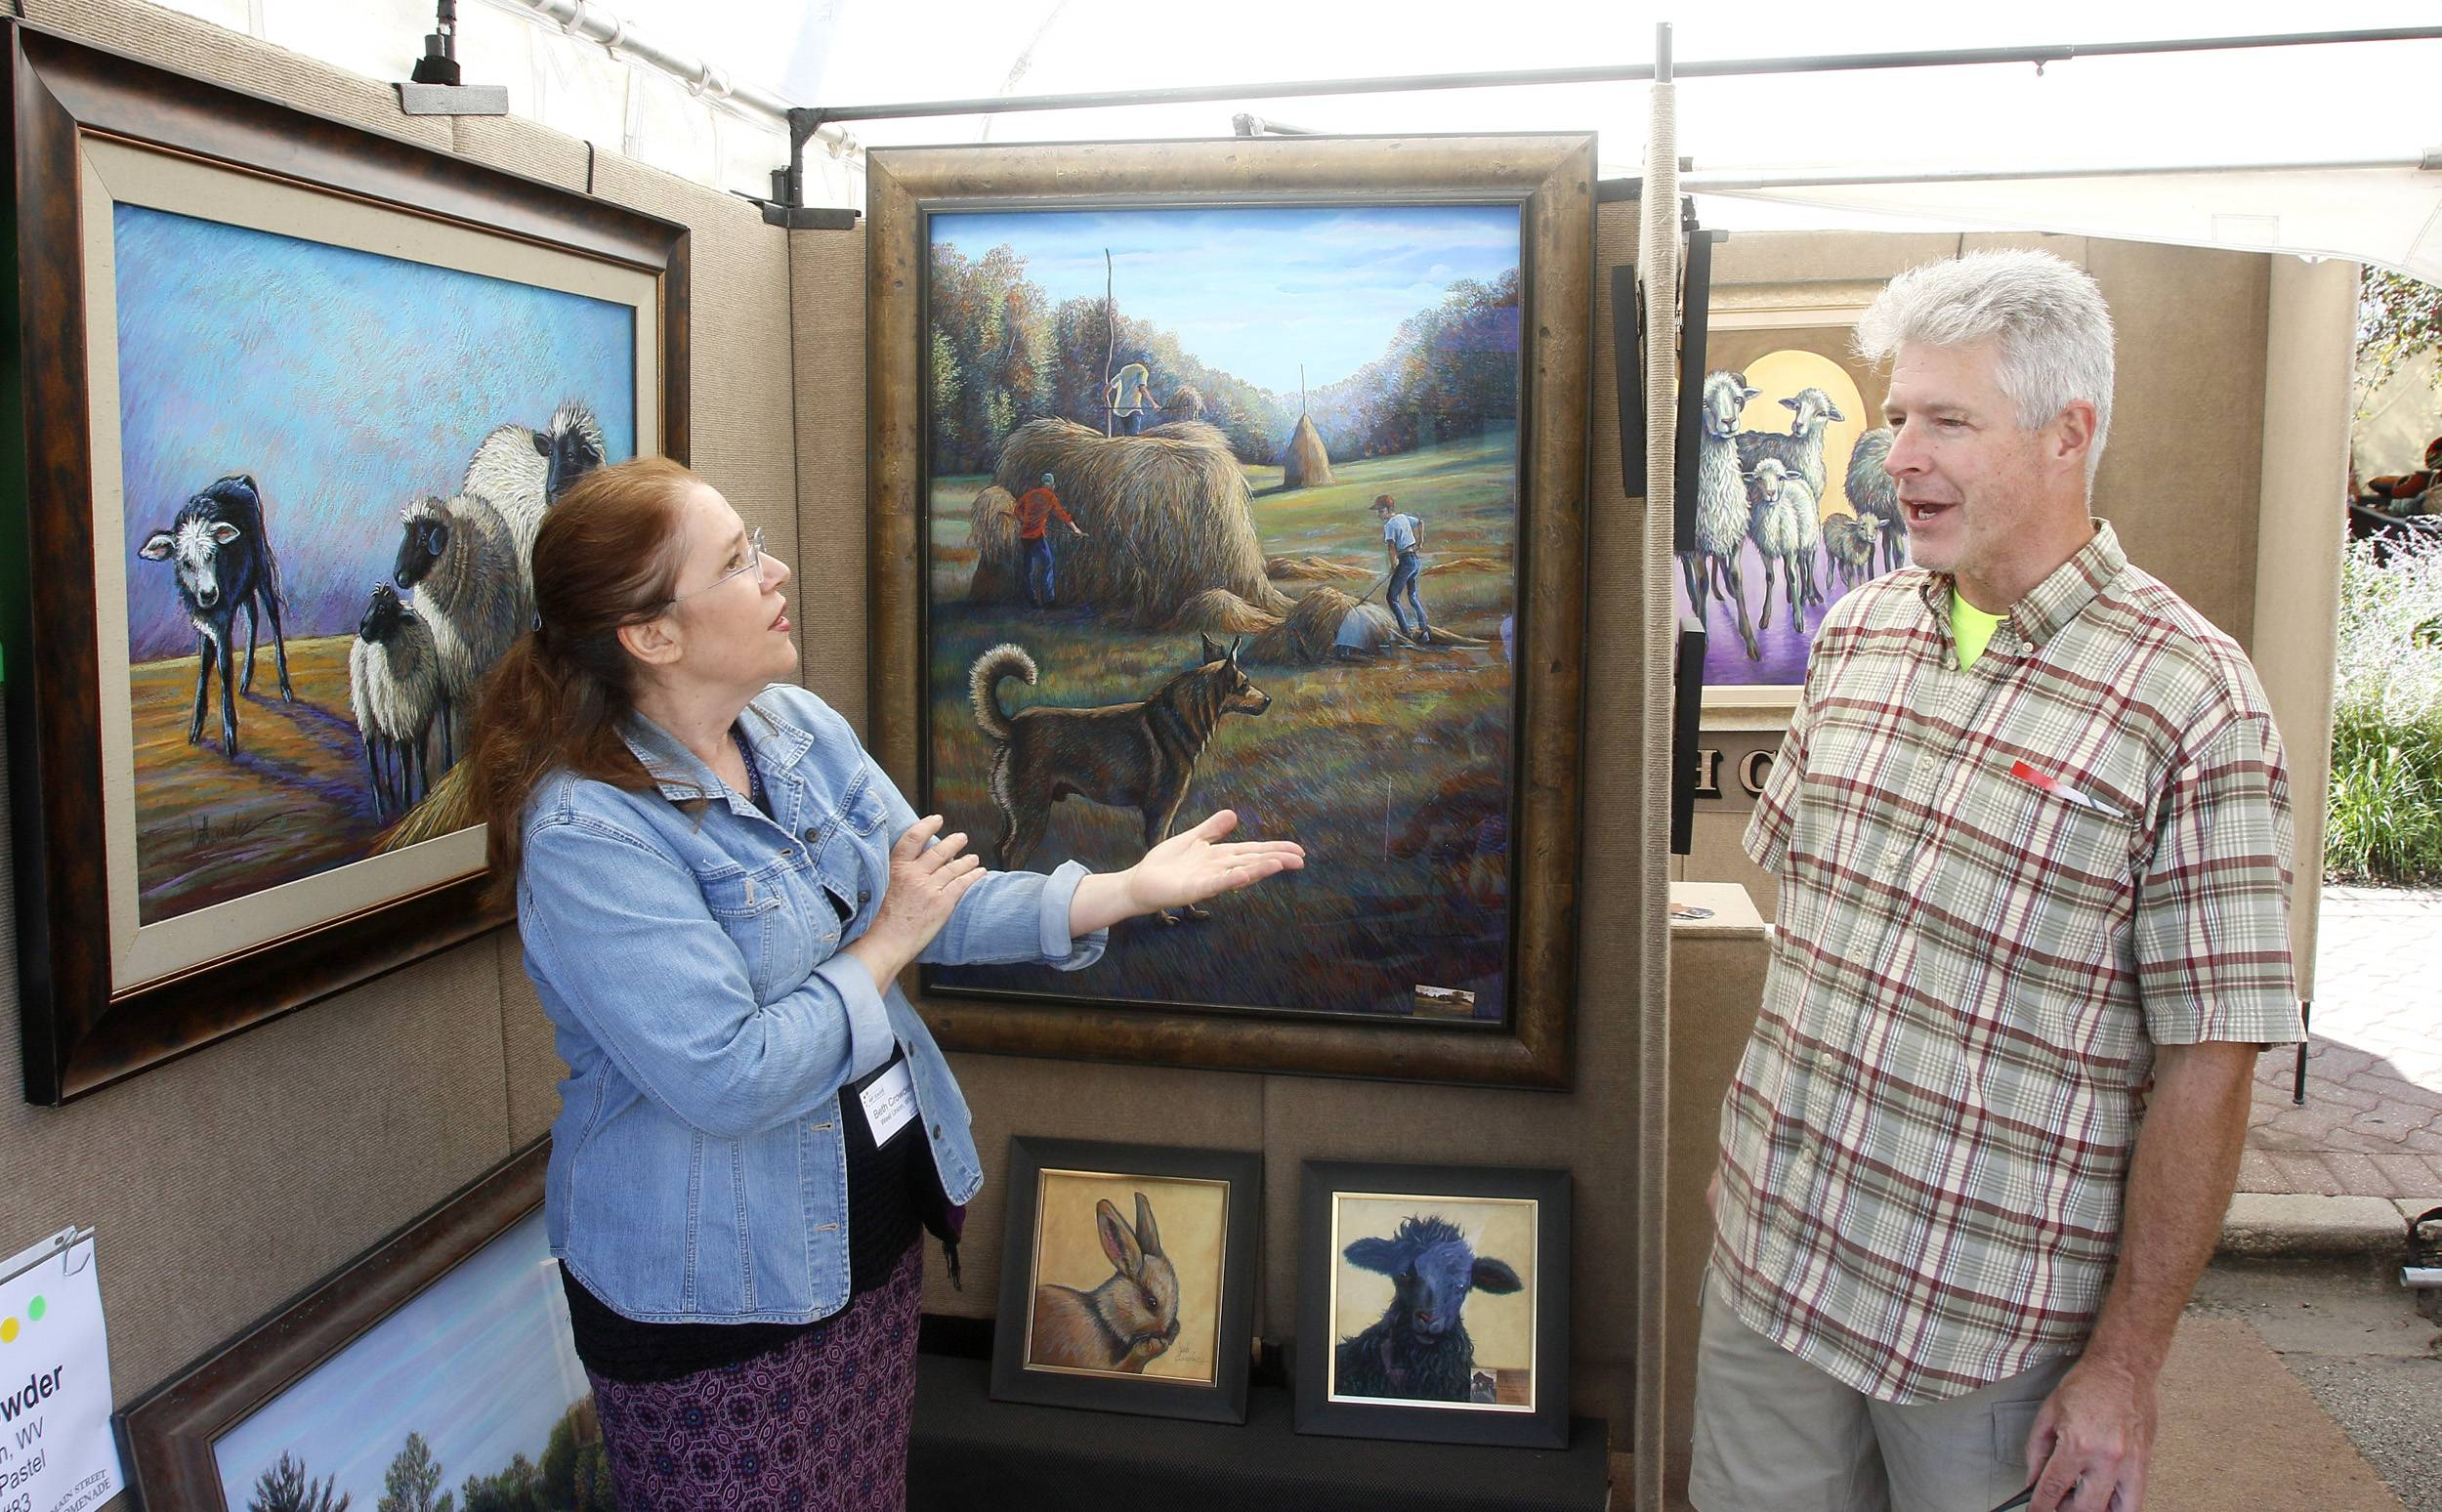 Speaking with artists is part of the fun of the Riverwalk Fine Art Fair for many art lovers who make the annual event a staple of their early fall calendar.